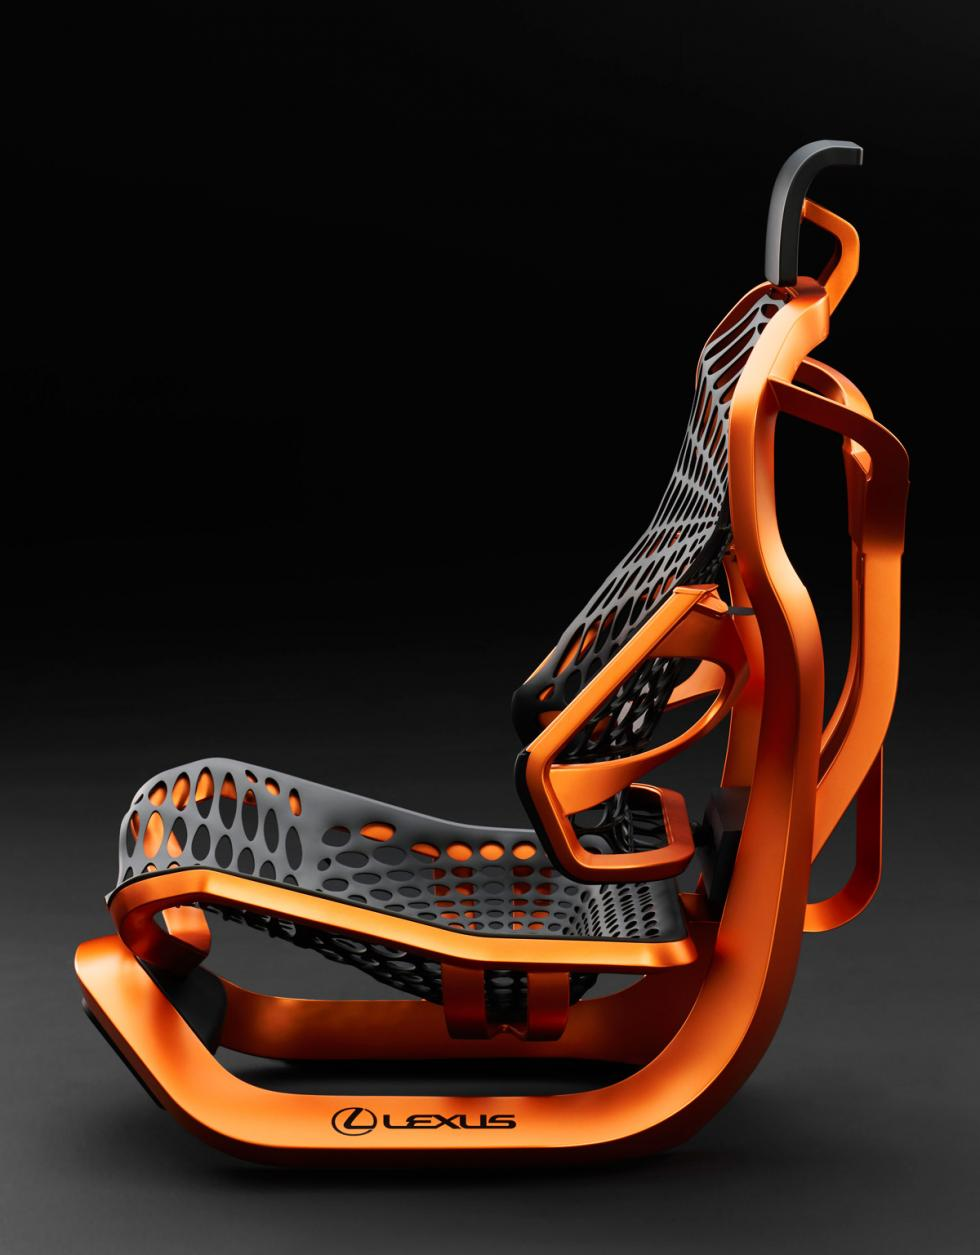 Asiento Lexus Kinetic Concept lateral